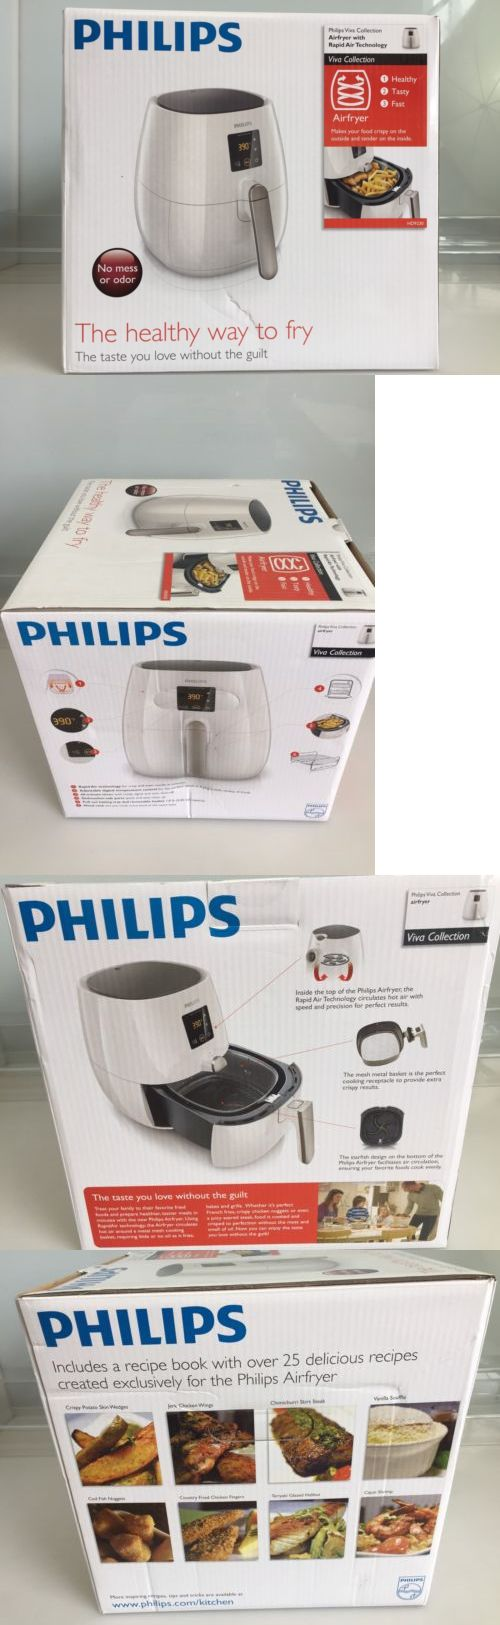 Deep Fryers 20674: Philips Viva Collection Digital Airfryer W Rapid Air Technology White Hd9230 56 -> BUY IT NOW ONLY: $214.95 on eBay!